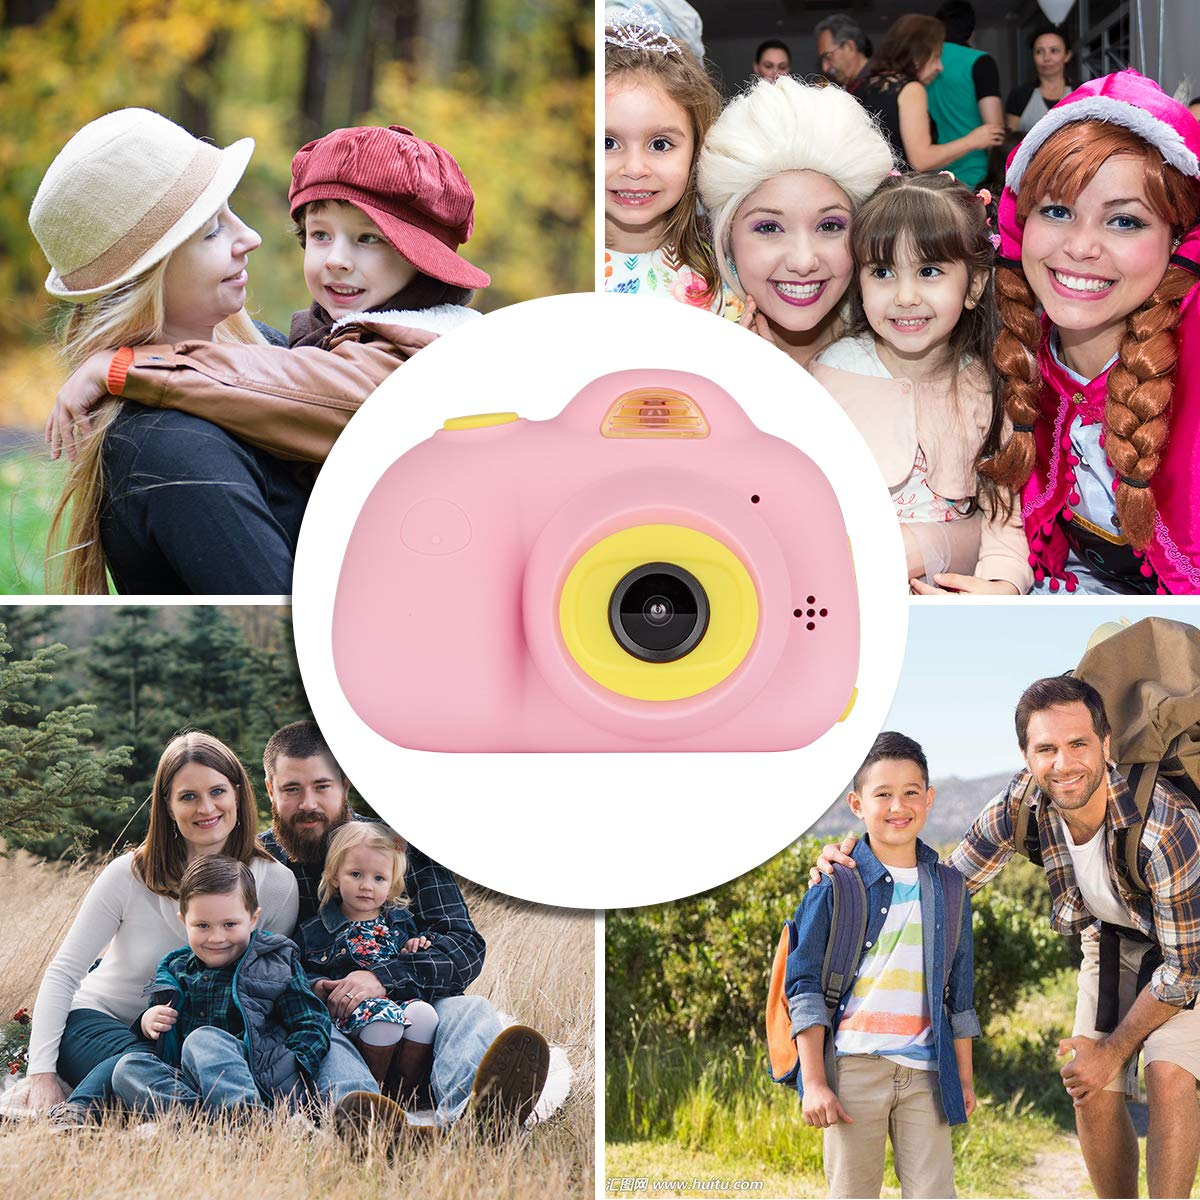 Kids Cameras Dual Selfie Digital Camera HD Video Recorder Action Camera Camcorder for 4-9 Year Old Kids Birthday Festival Gifts Toys for Children Boys Girls 2.0'' LCD Screen 4X Digital Zoom (Pink) by Tyhbelle (Image #5)